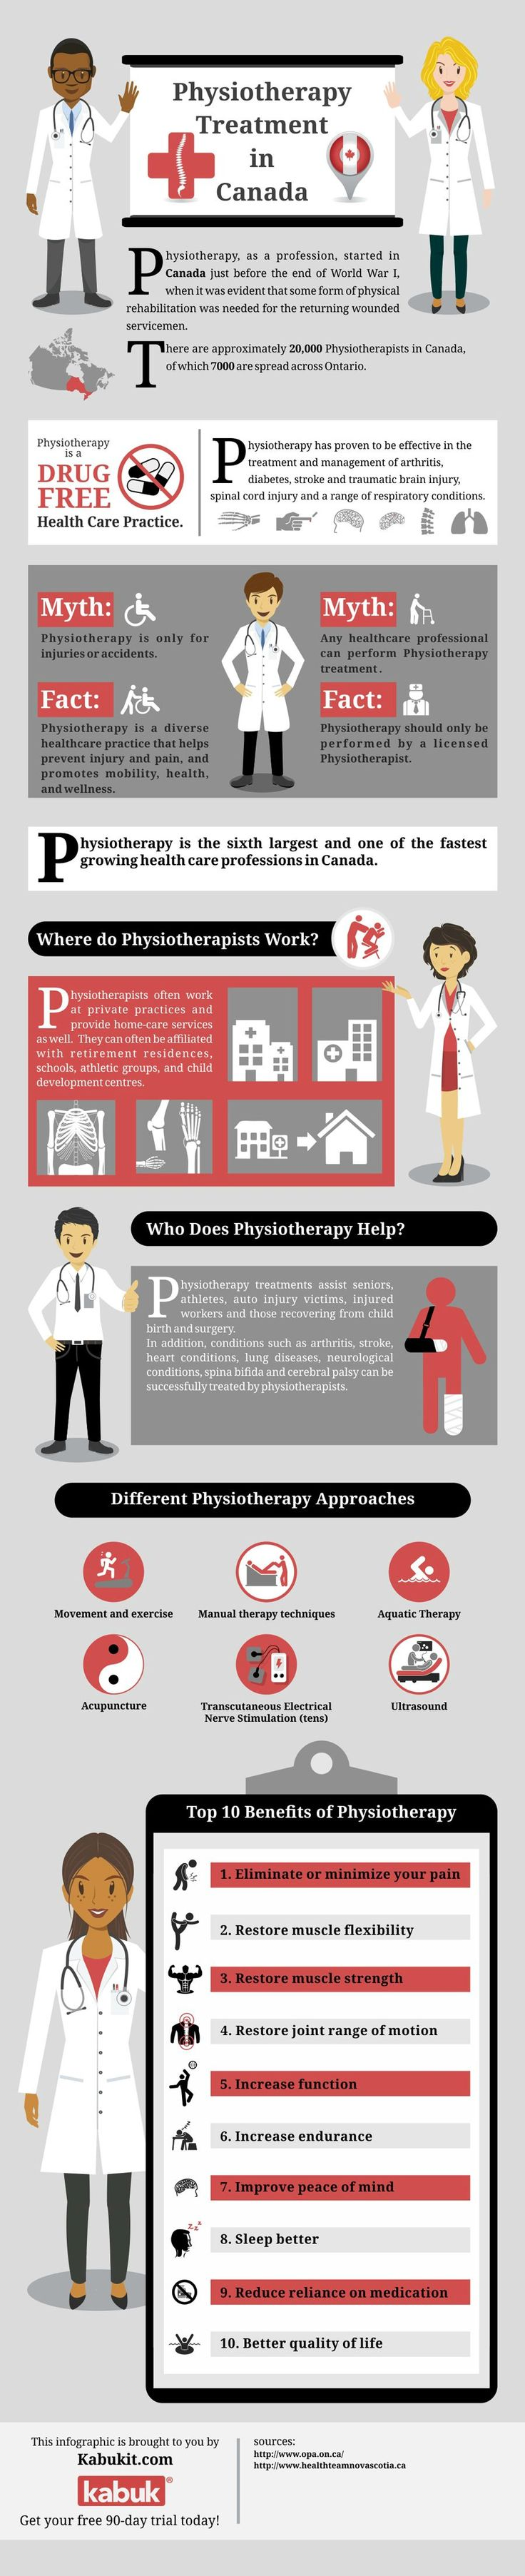 History of physical therapy treatment - Excited To Share Our Brand New Infographic On Physiotherapy Treatment In Canada With All Of You